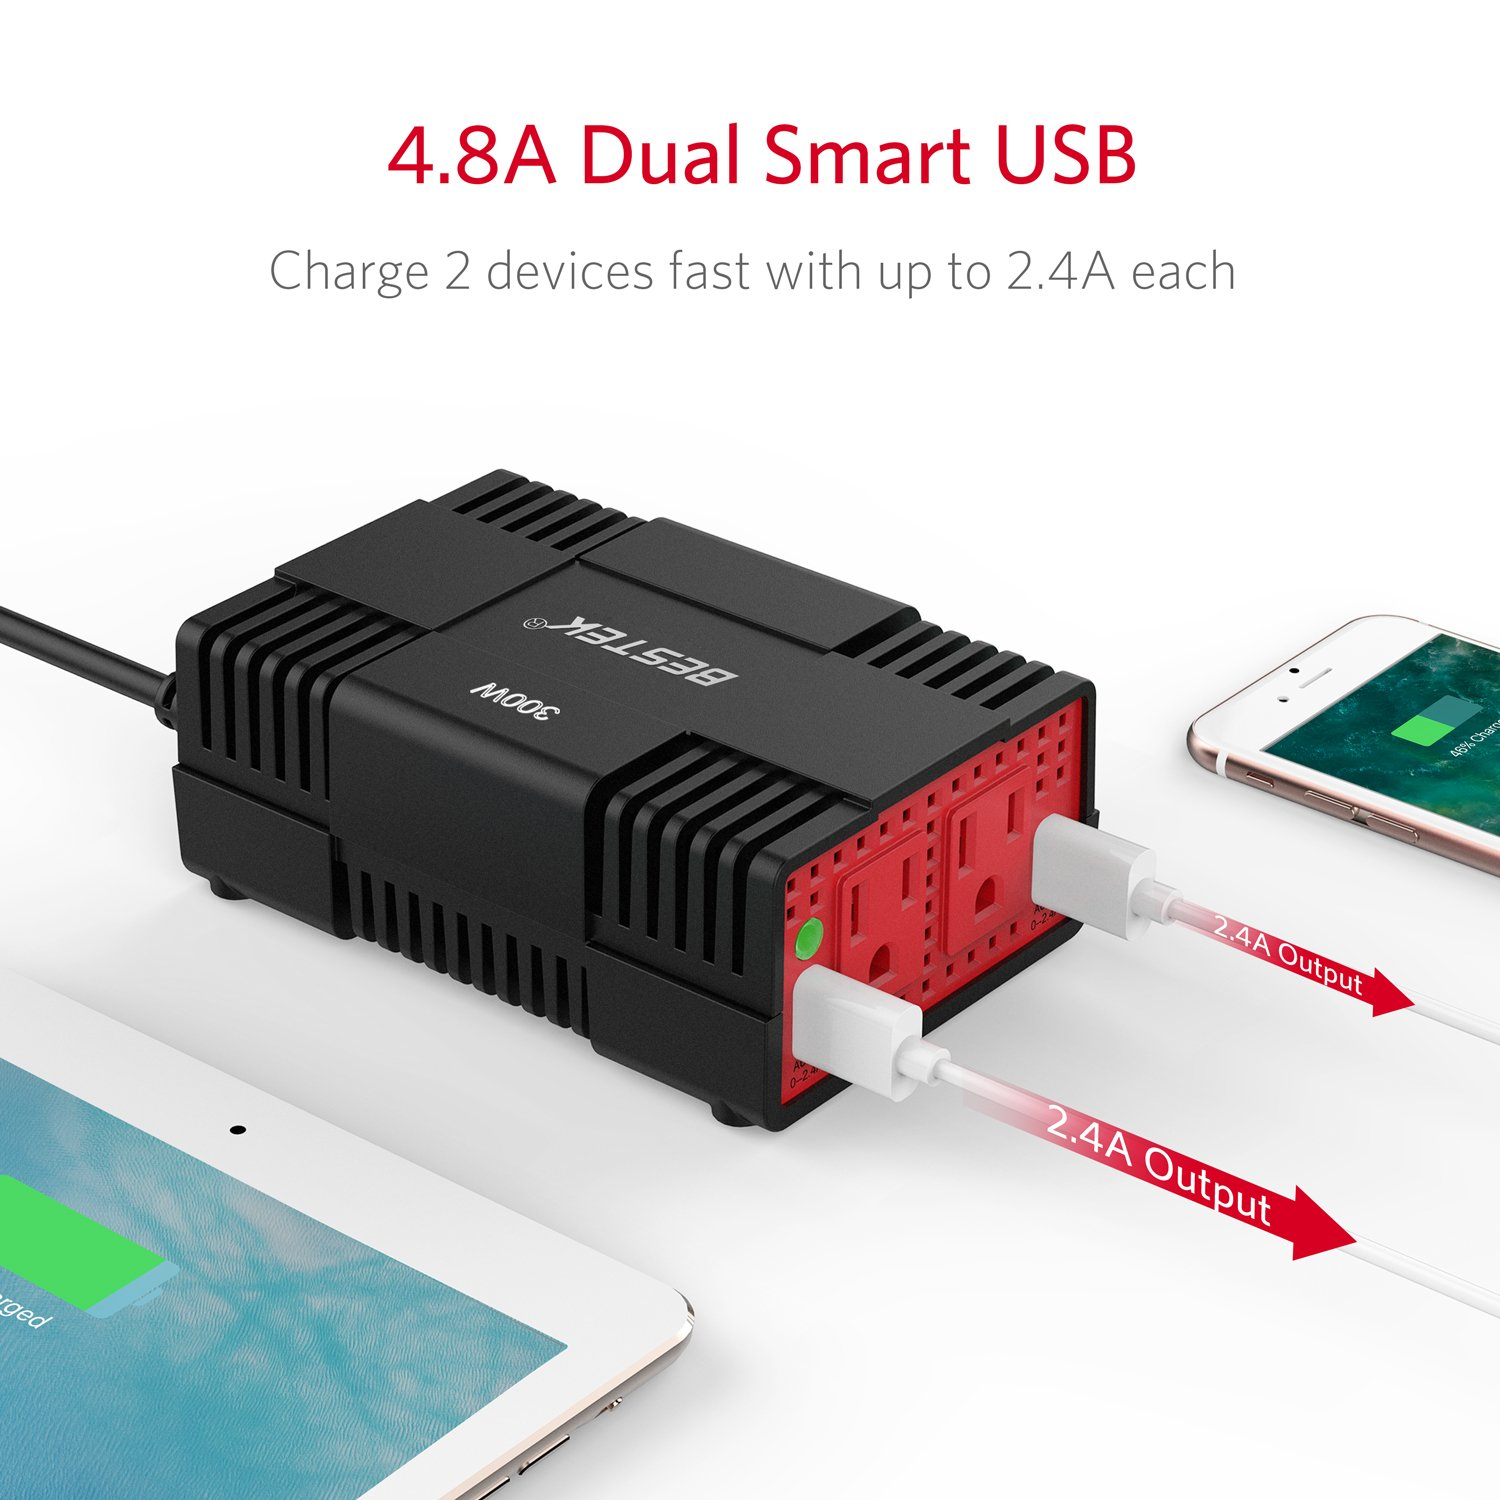 Bestek 300w Power Inverter Dc 12v To 110v Ac Car Altima Xbox 360 Supply Cpu Motherboard With 48a Dual Usb Charging Port Electronics